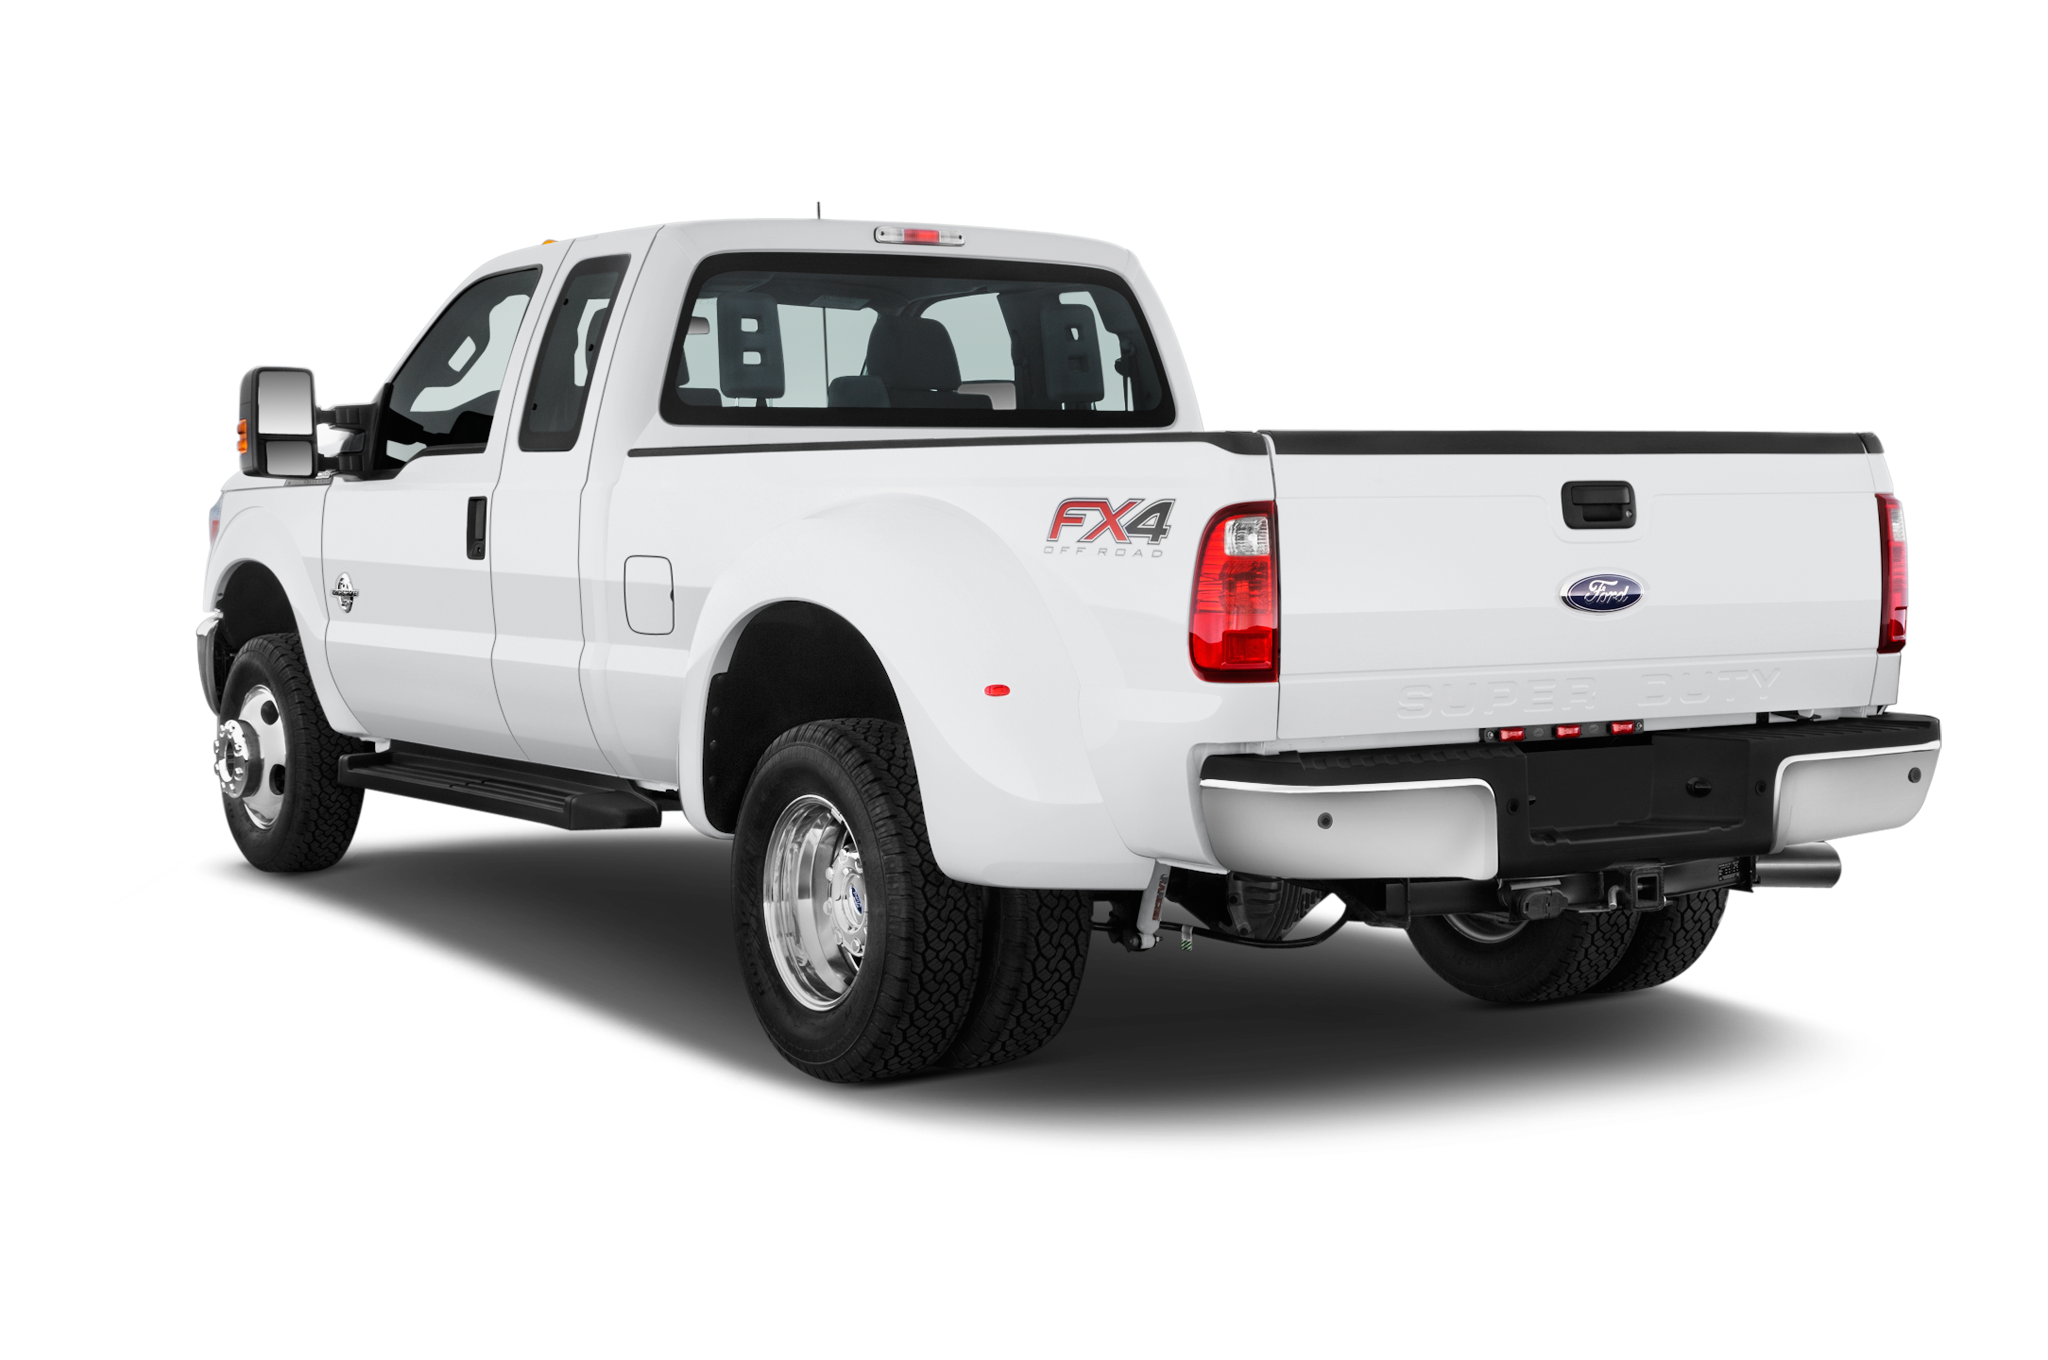 2014 Ford F 350 Super Duty International Price Overview Prices Specs